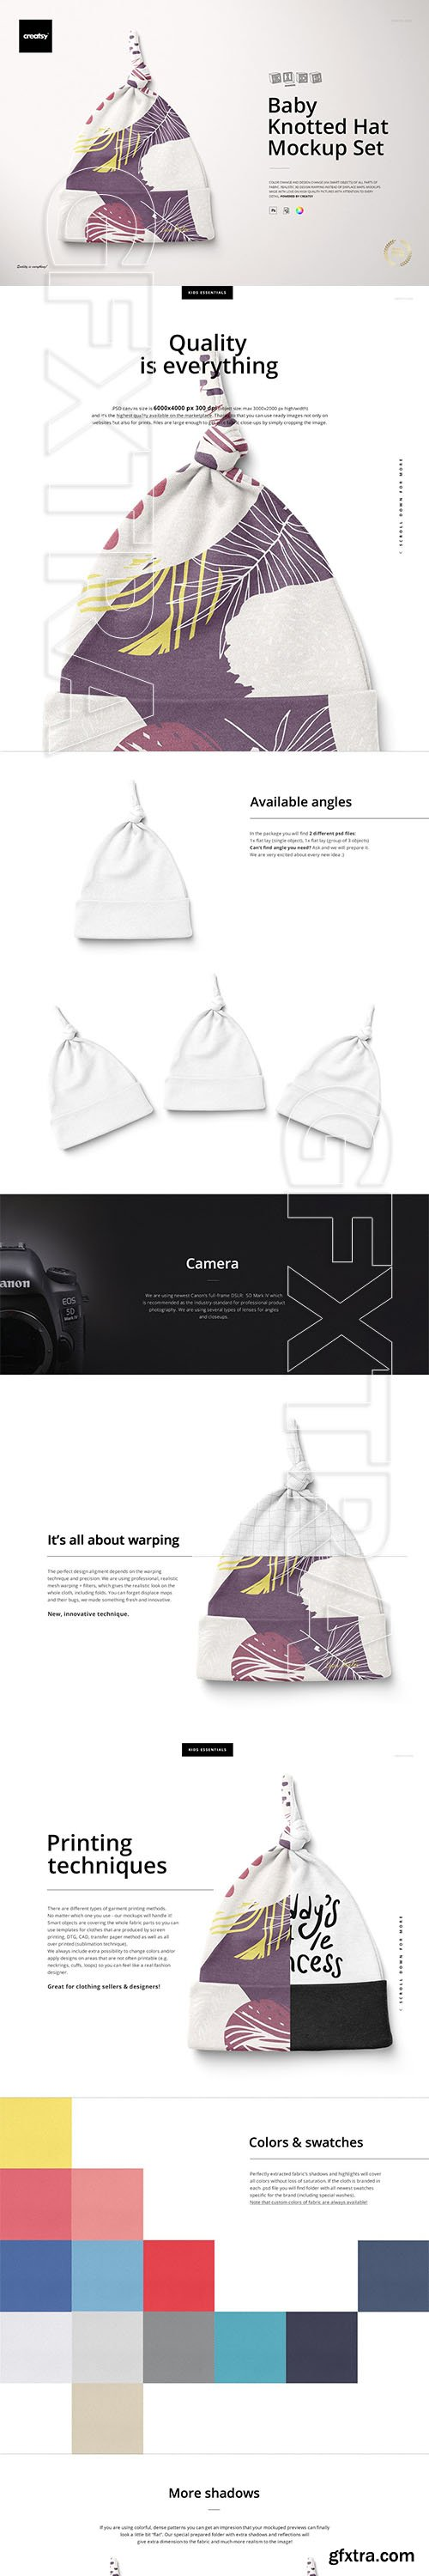 CreativeMarket - Baby Knotted Hat Mockup Set 4287908